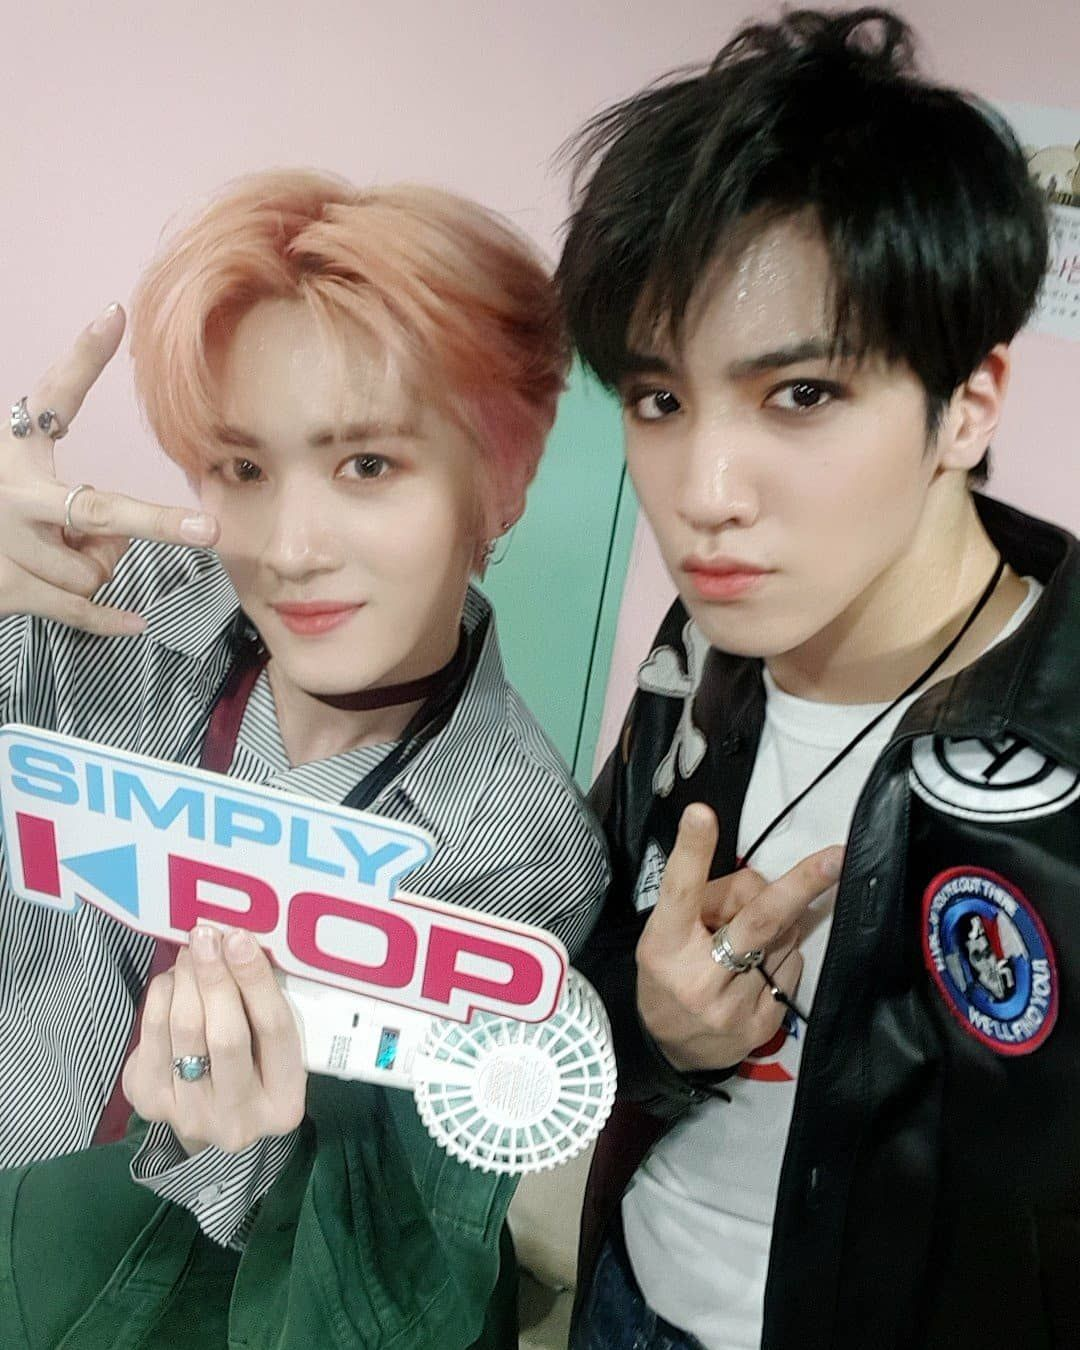 190404 Simply K-pop YanAn & Wooseok | Pentagon in 2019